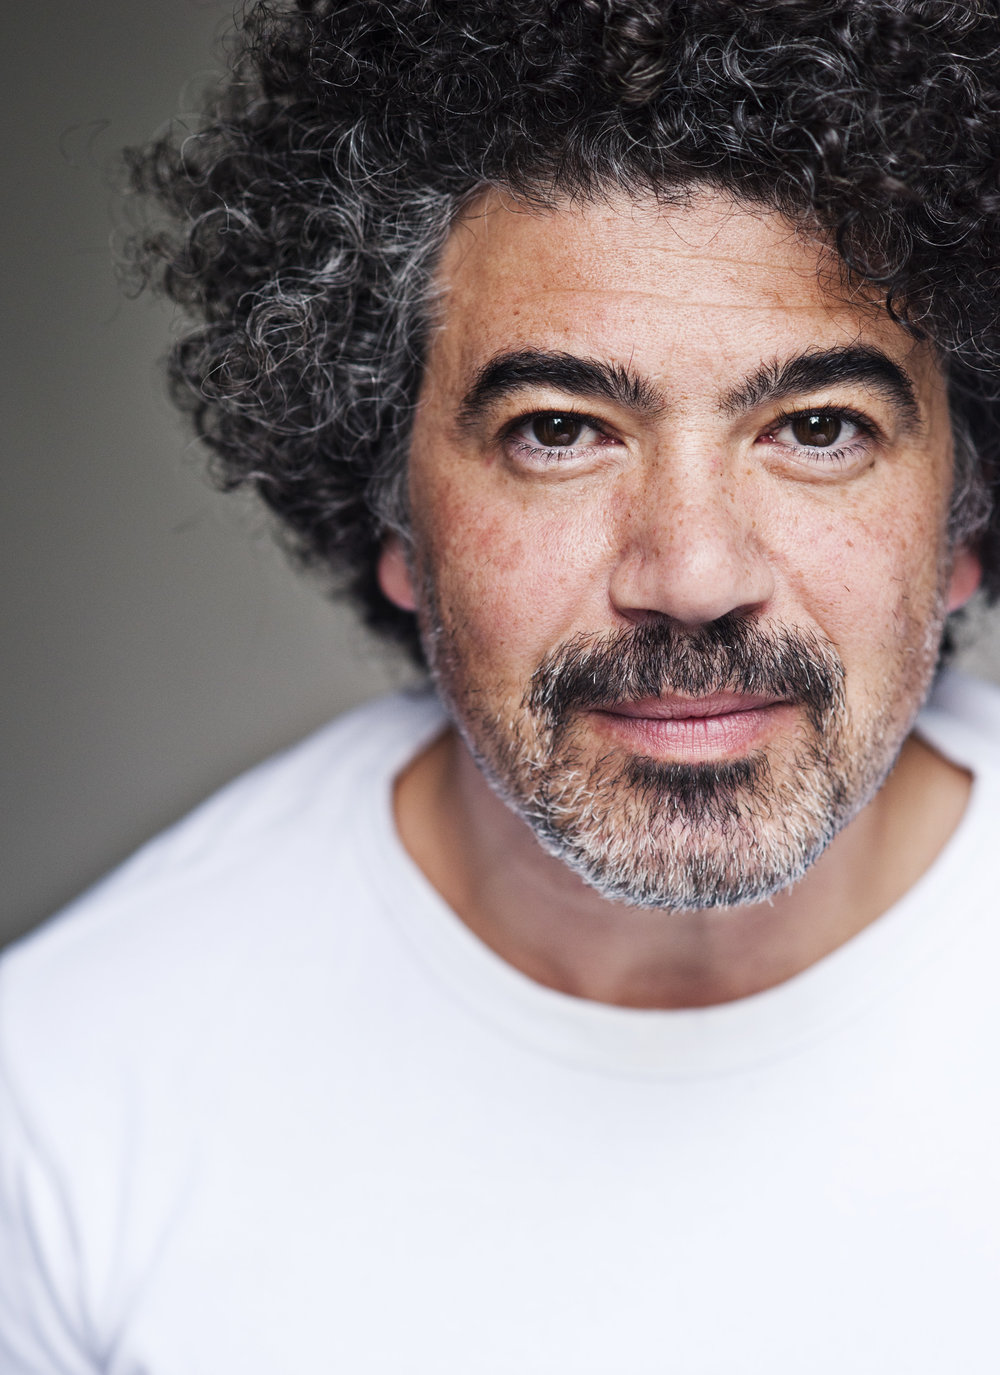 MILTOS YEROLEMOU IN SEASON 3 OF THE CROWN - Miltos Yerolemou will be playing Chronos in the greatly anticipated upcoming season of The Crown for Netflix. Miltos has previously appeared as series favourite Syrio Forel in the hit HBO show Game Of Thrones.